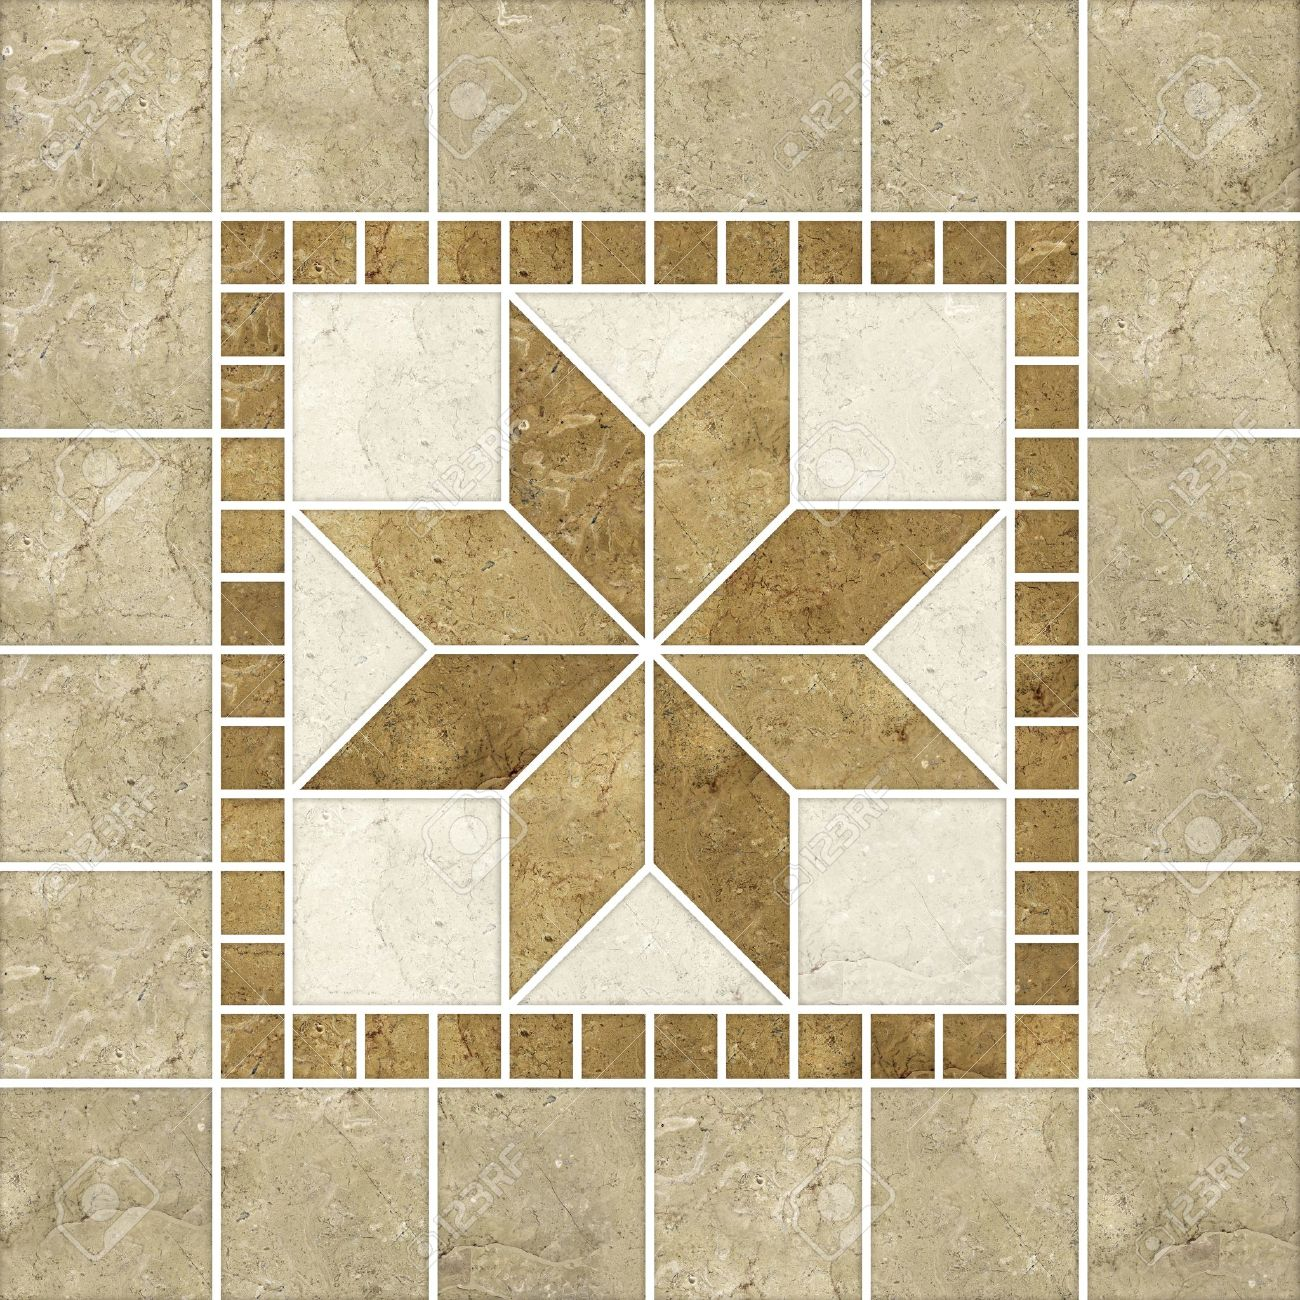 floor tile texture. highquality mosaic pattern decor background stock photo 18327790 floor tile texture